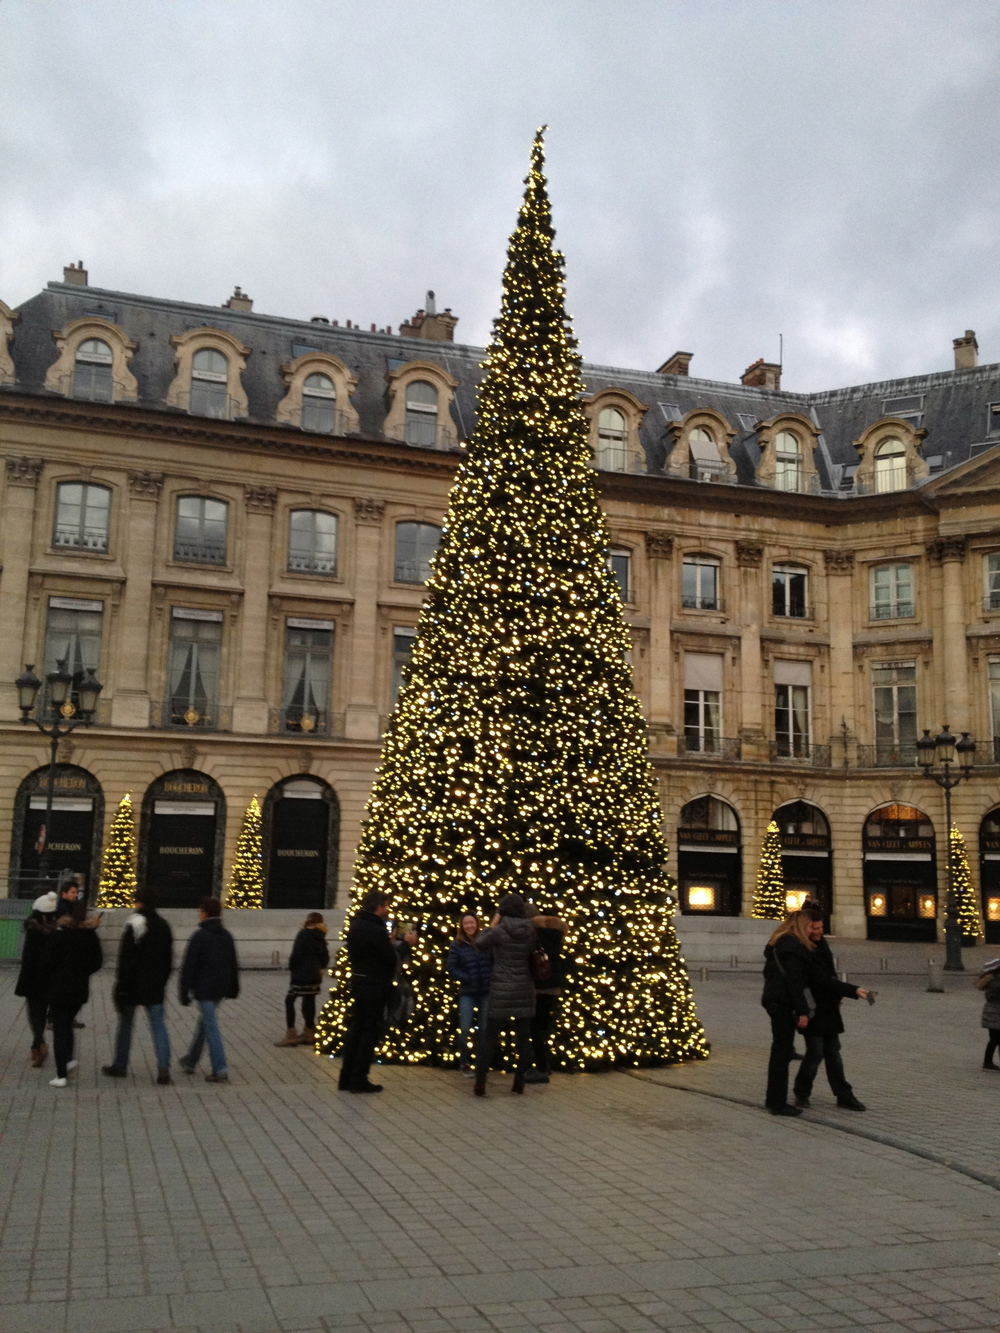 Christmas cheer in Place Vendome